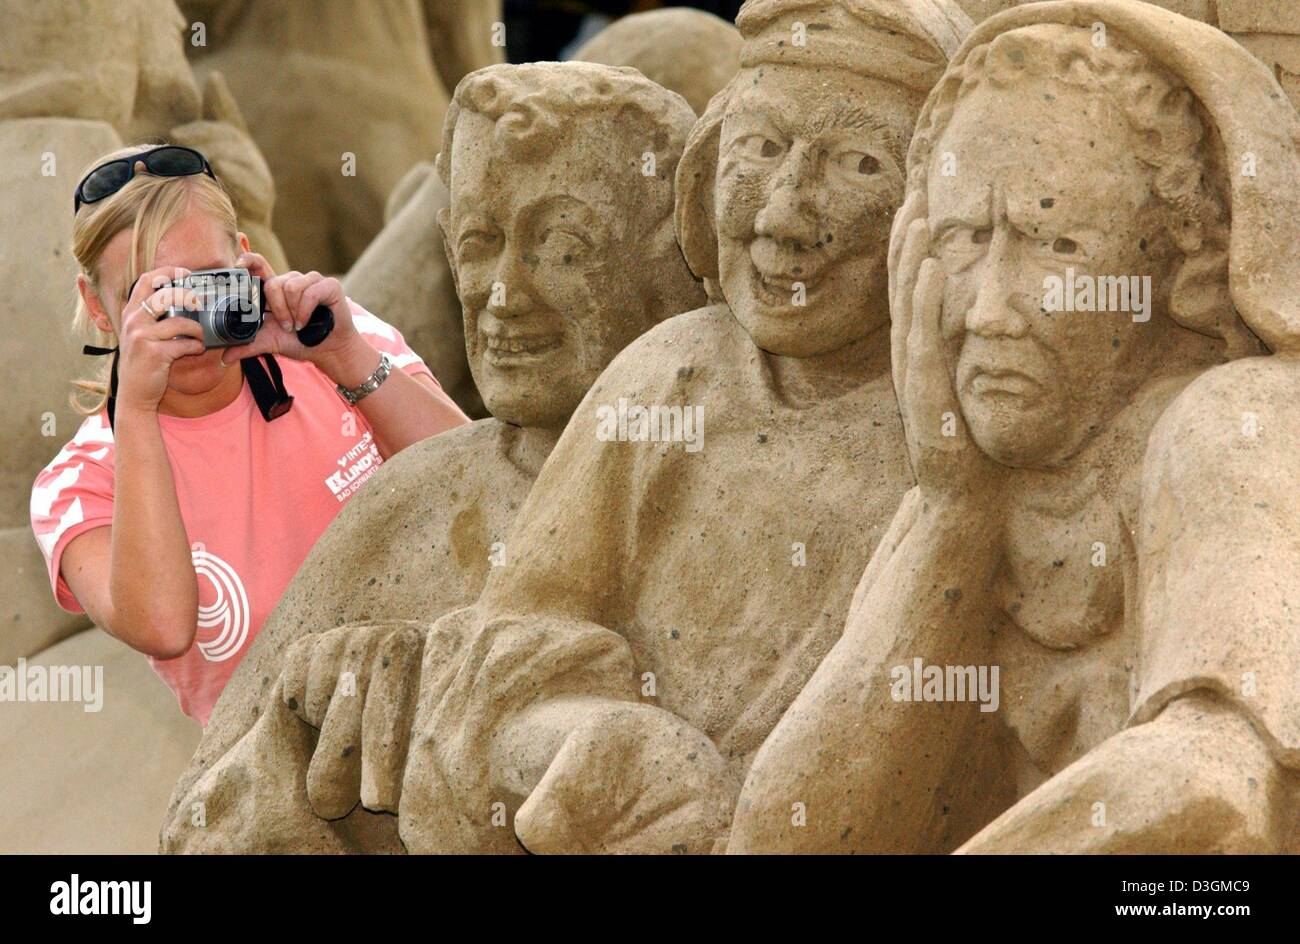 (dpa) - An employee takes a picture of three statues made of sand depicting the 'antique Nike Air trainers salesmen' Stock Photo